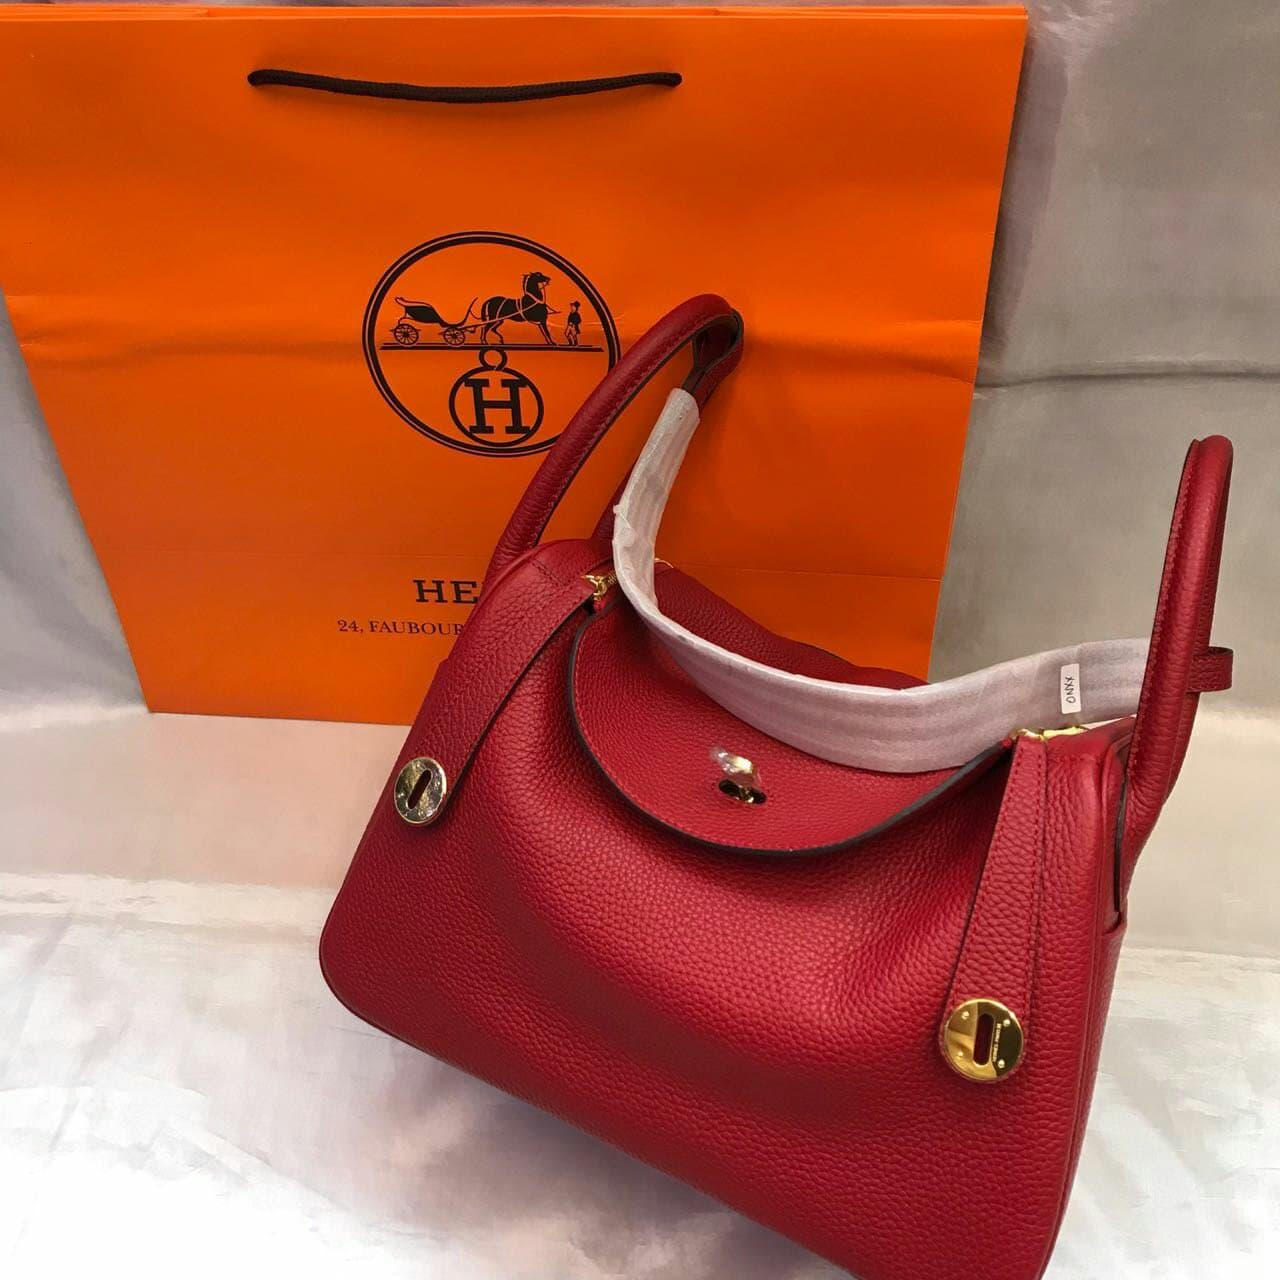 TAS HERMES LINDY CLEMENCE RED GHW 30CM MIRROR QUALITY